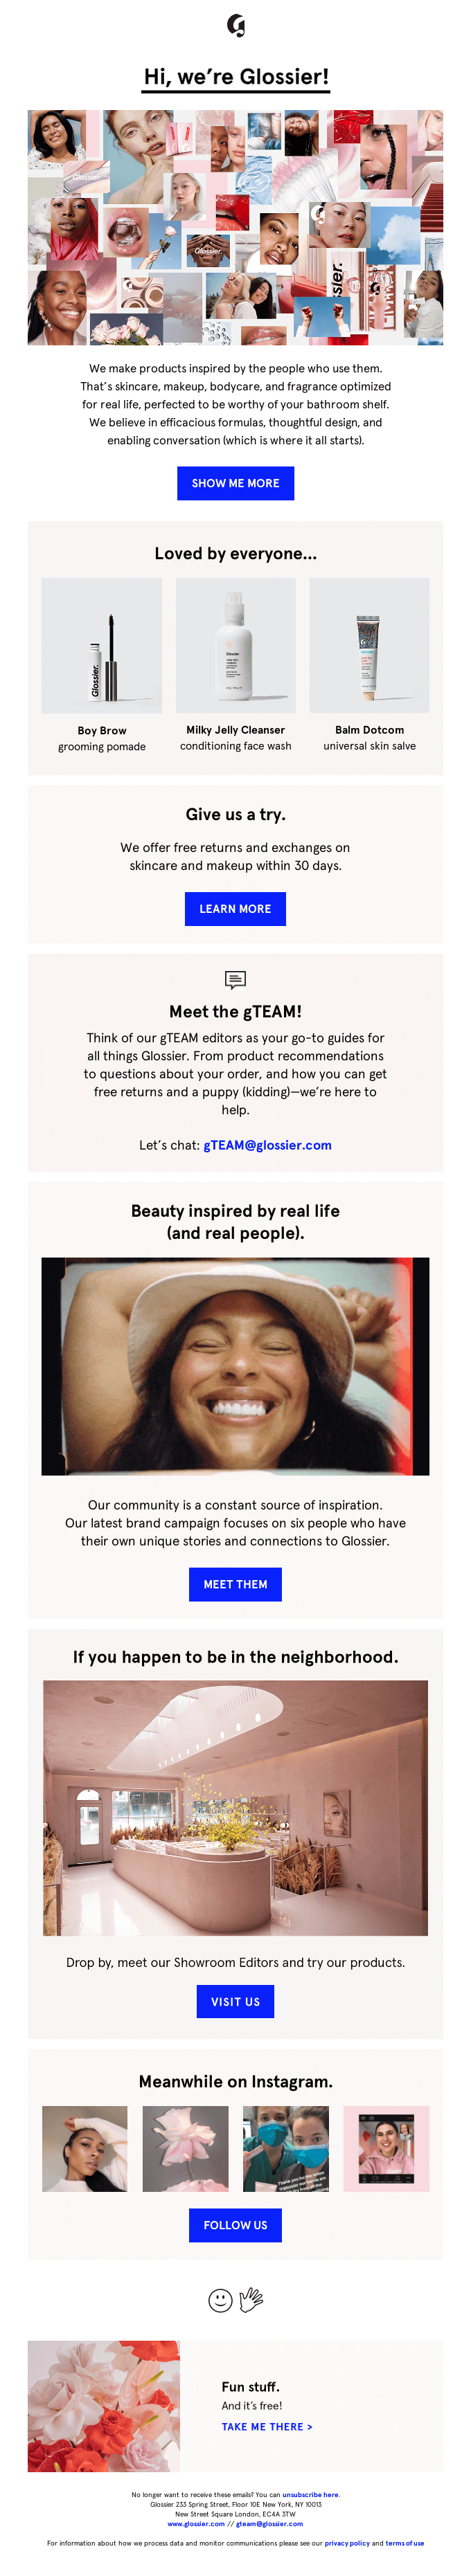 upselling through welcome emails - glossier